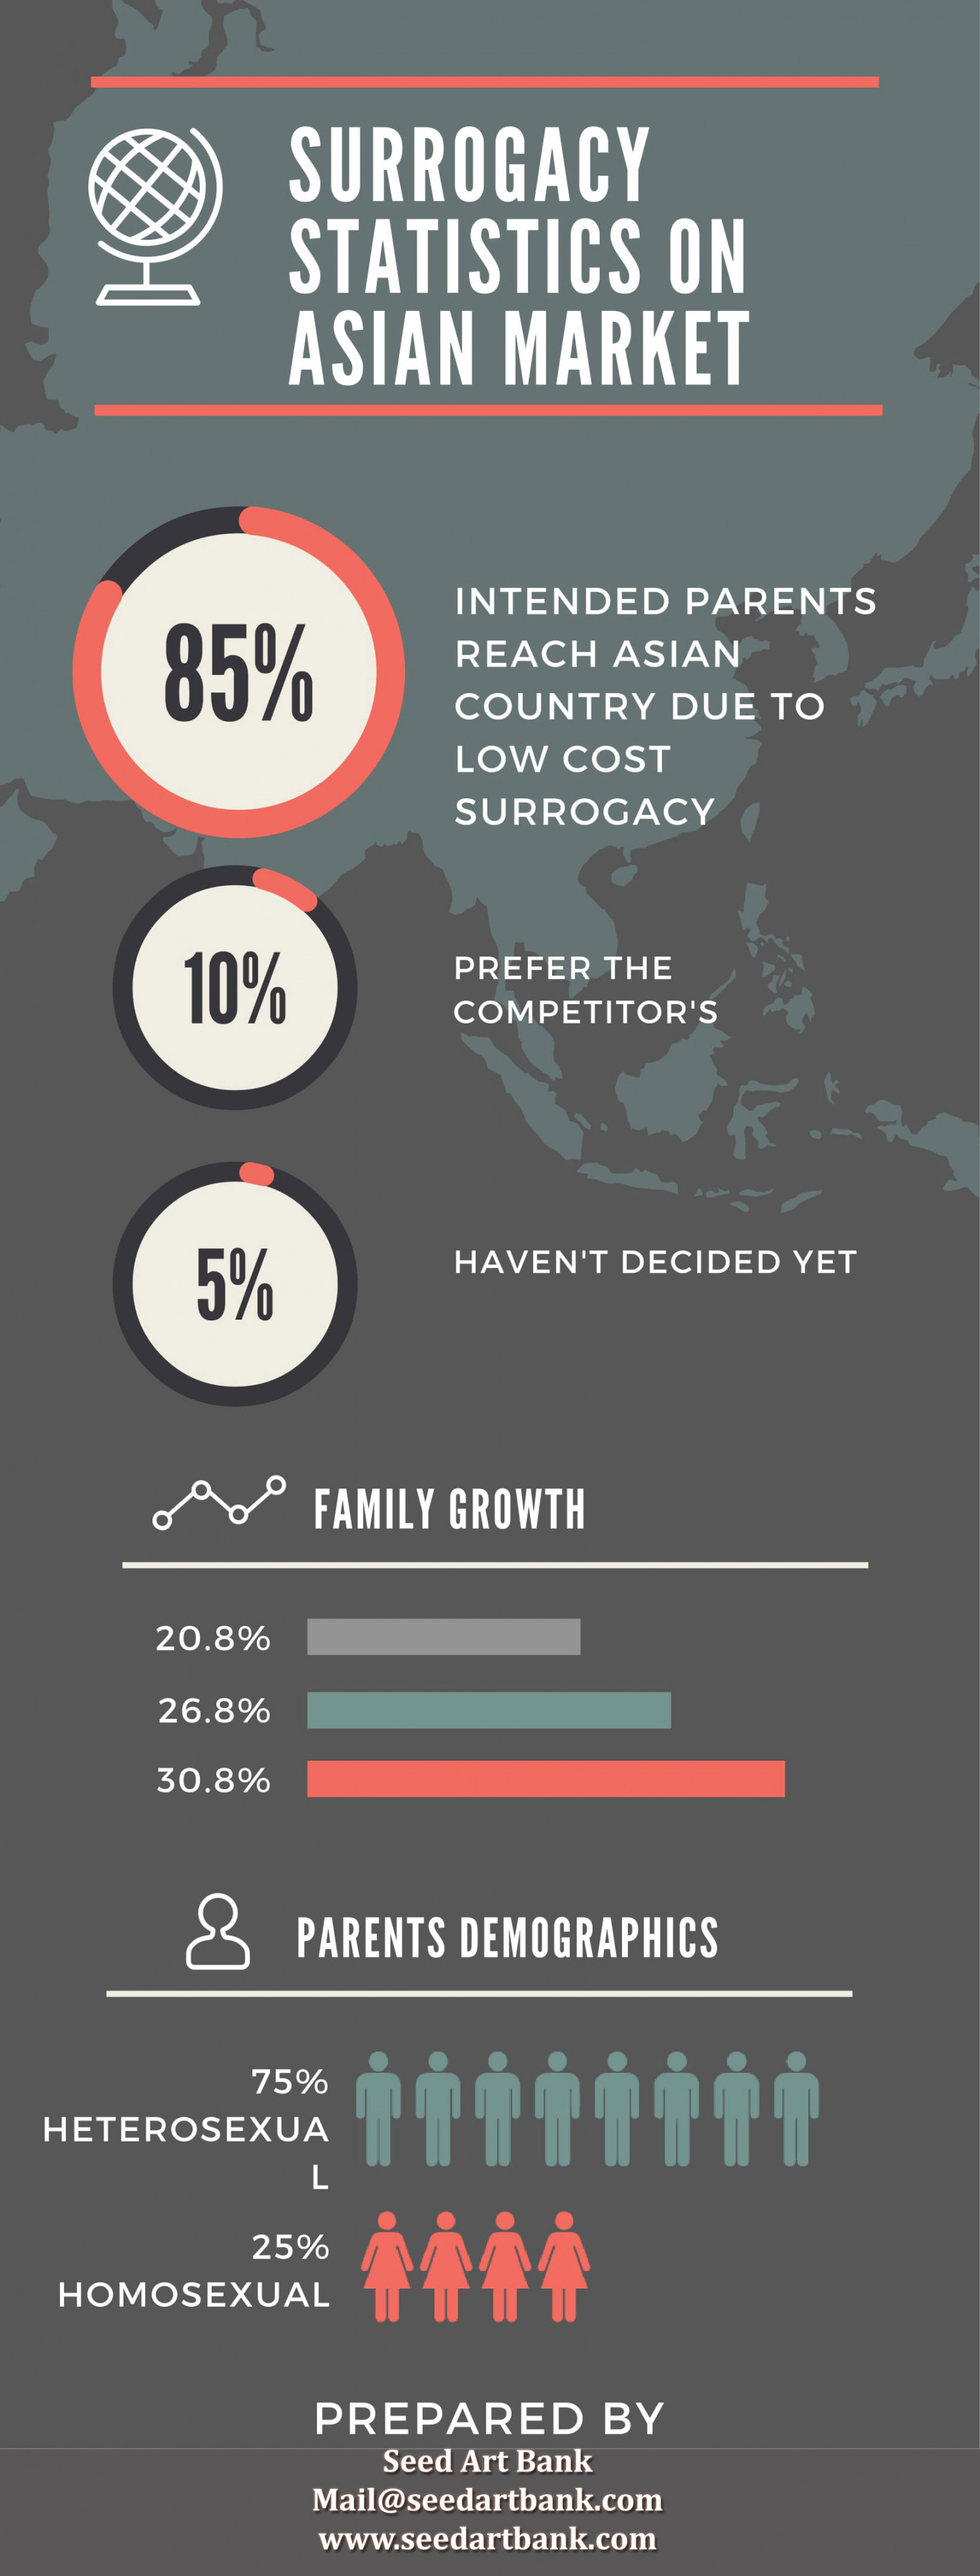 Surrogacy Statistics in Asian Market by Seed Art Bank Infographic